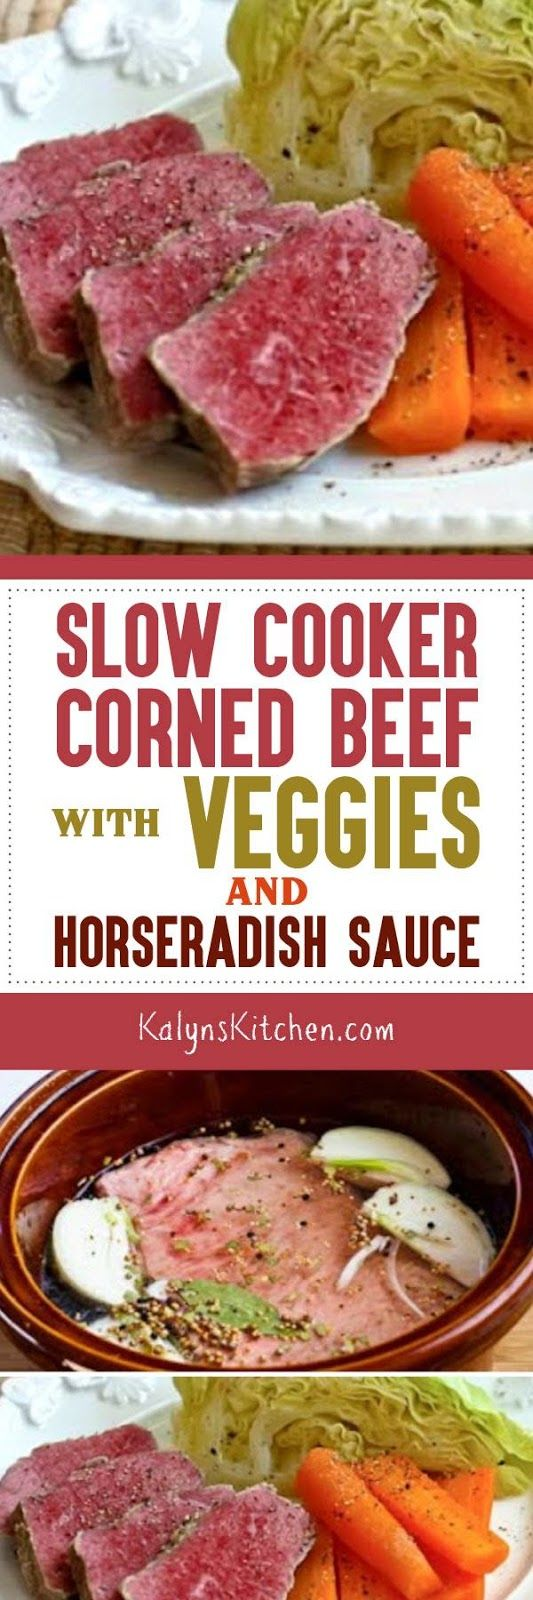 I know this type of corned beef dinner isn't authentically Irish, but I still like to make Slow Cooker Corned Beef with Veggies and Horseradish Sauce just about every year for St. Patrick's Day. And corned beef in the slow cooker couldn't be easier or more delicious. The corned beef and cabbage is low-carb, Keto, low-glycemic, and gluten-free; if you add carrots they are higher in carbs. [found on KalynsKitchen.com]